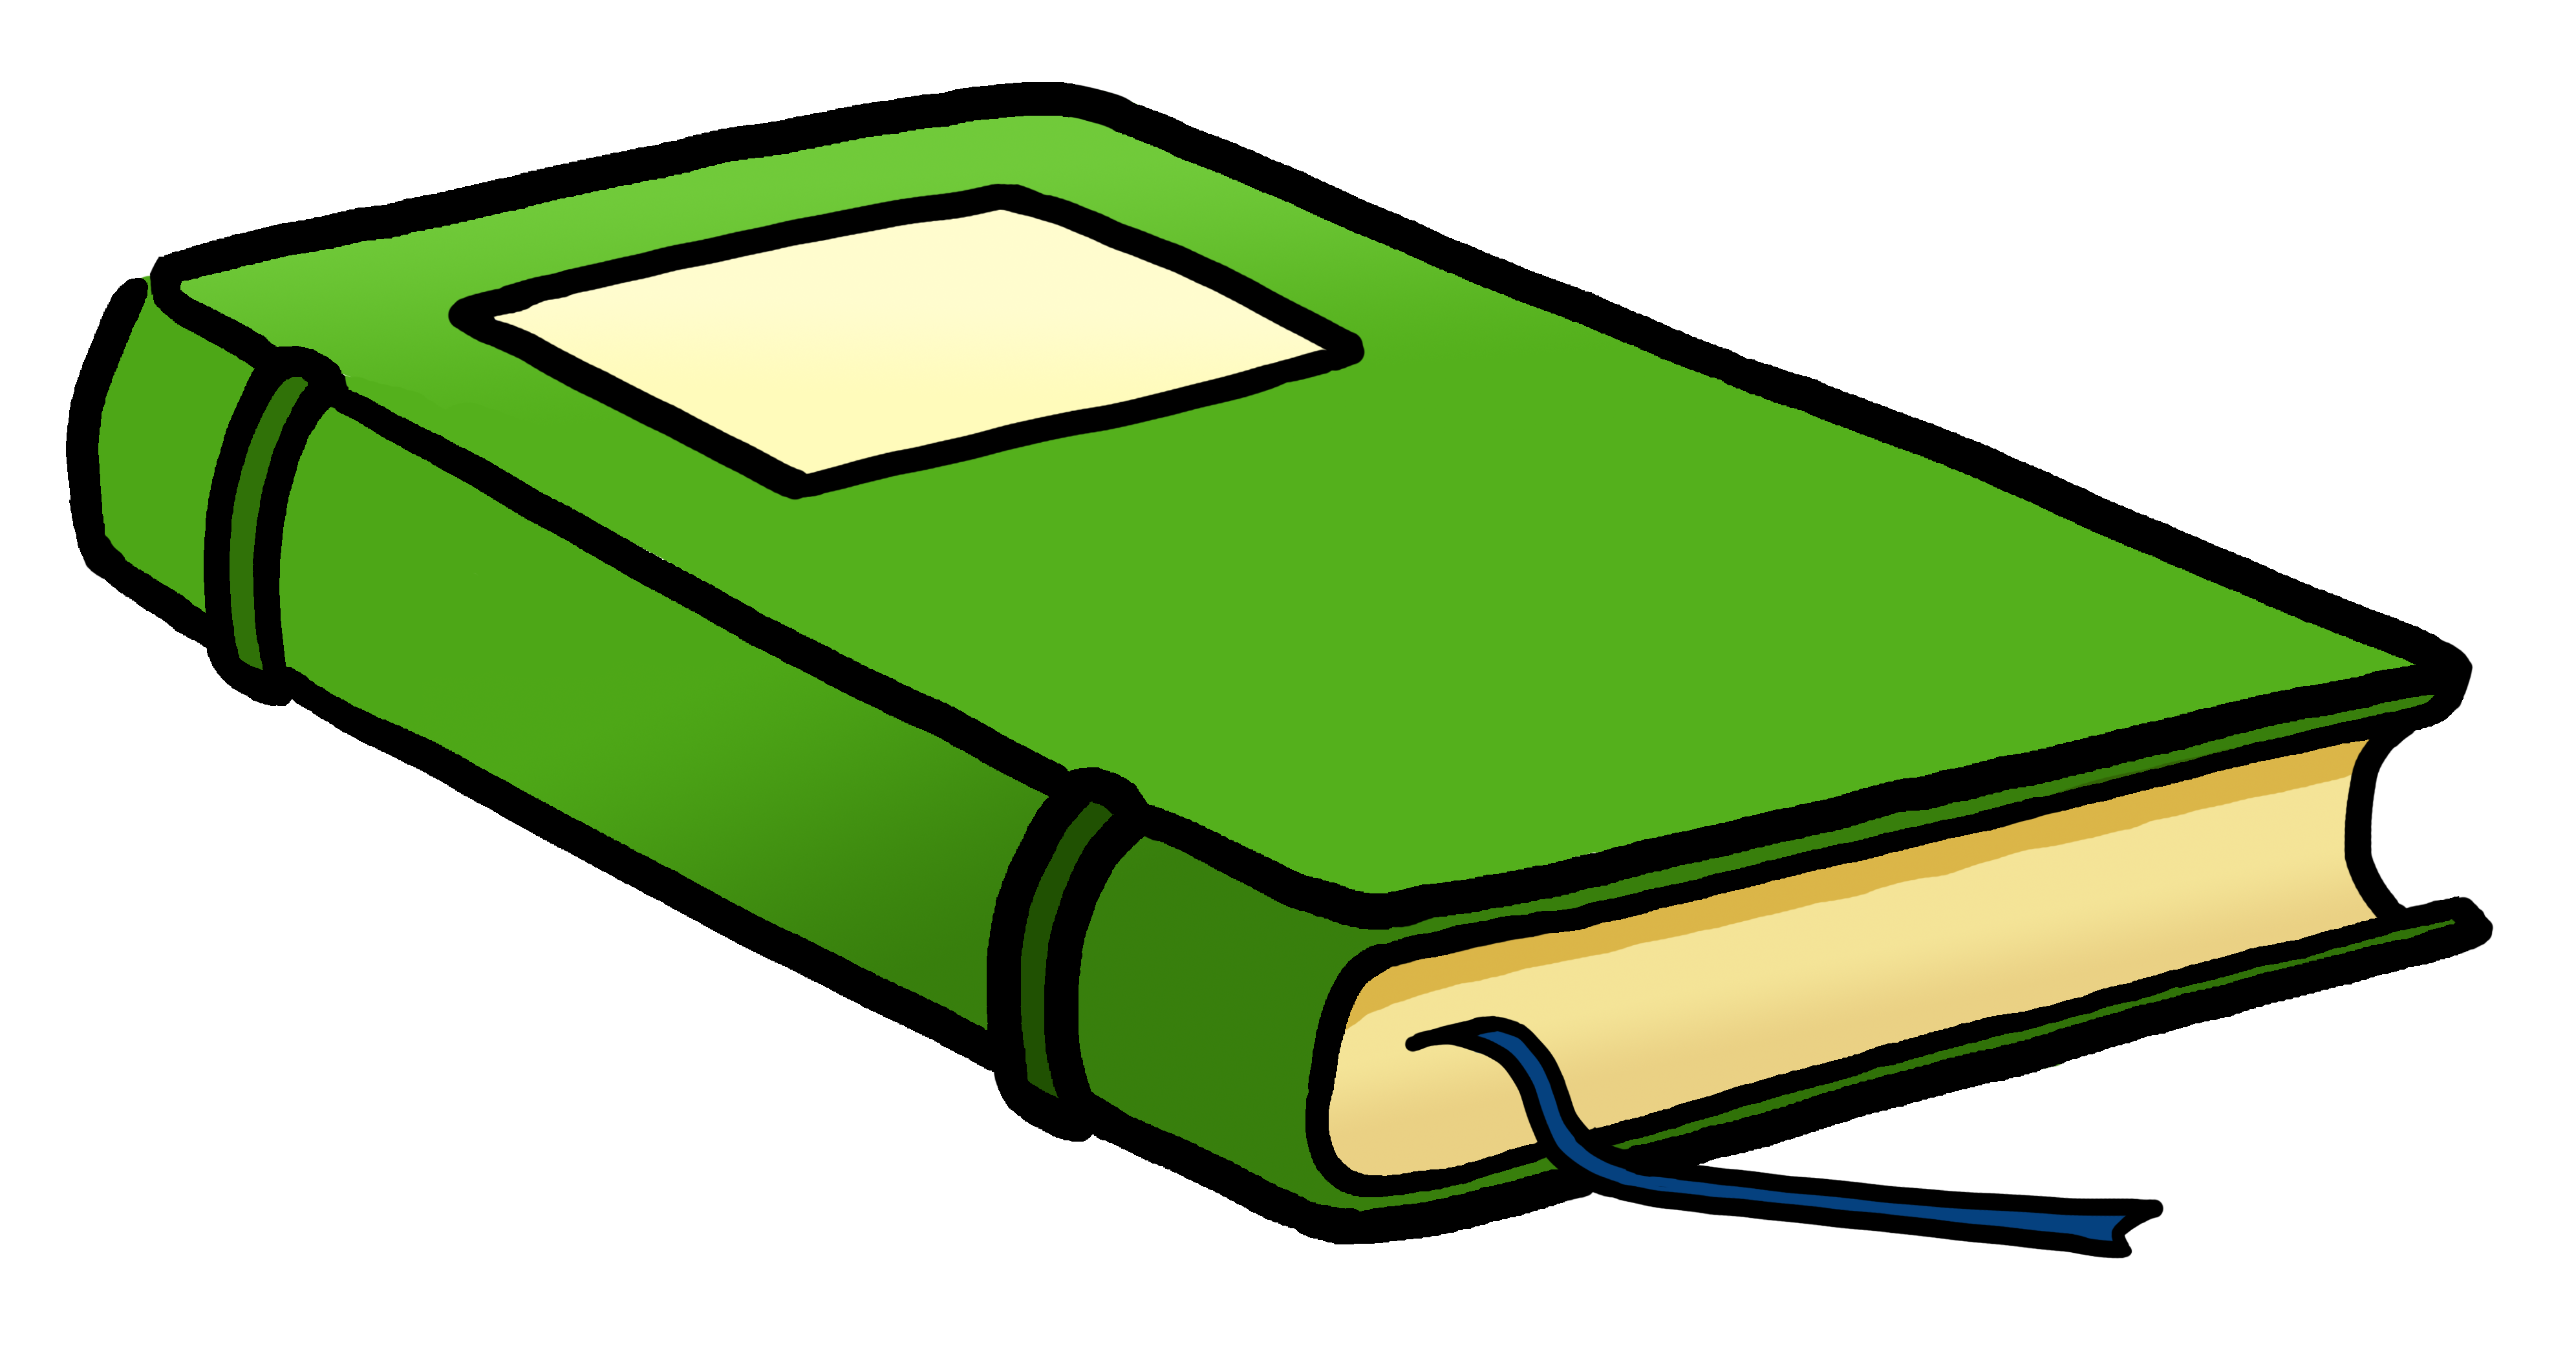 Books closed book clip art free clipart images